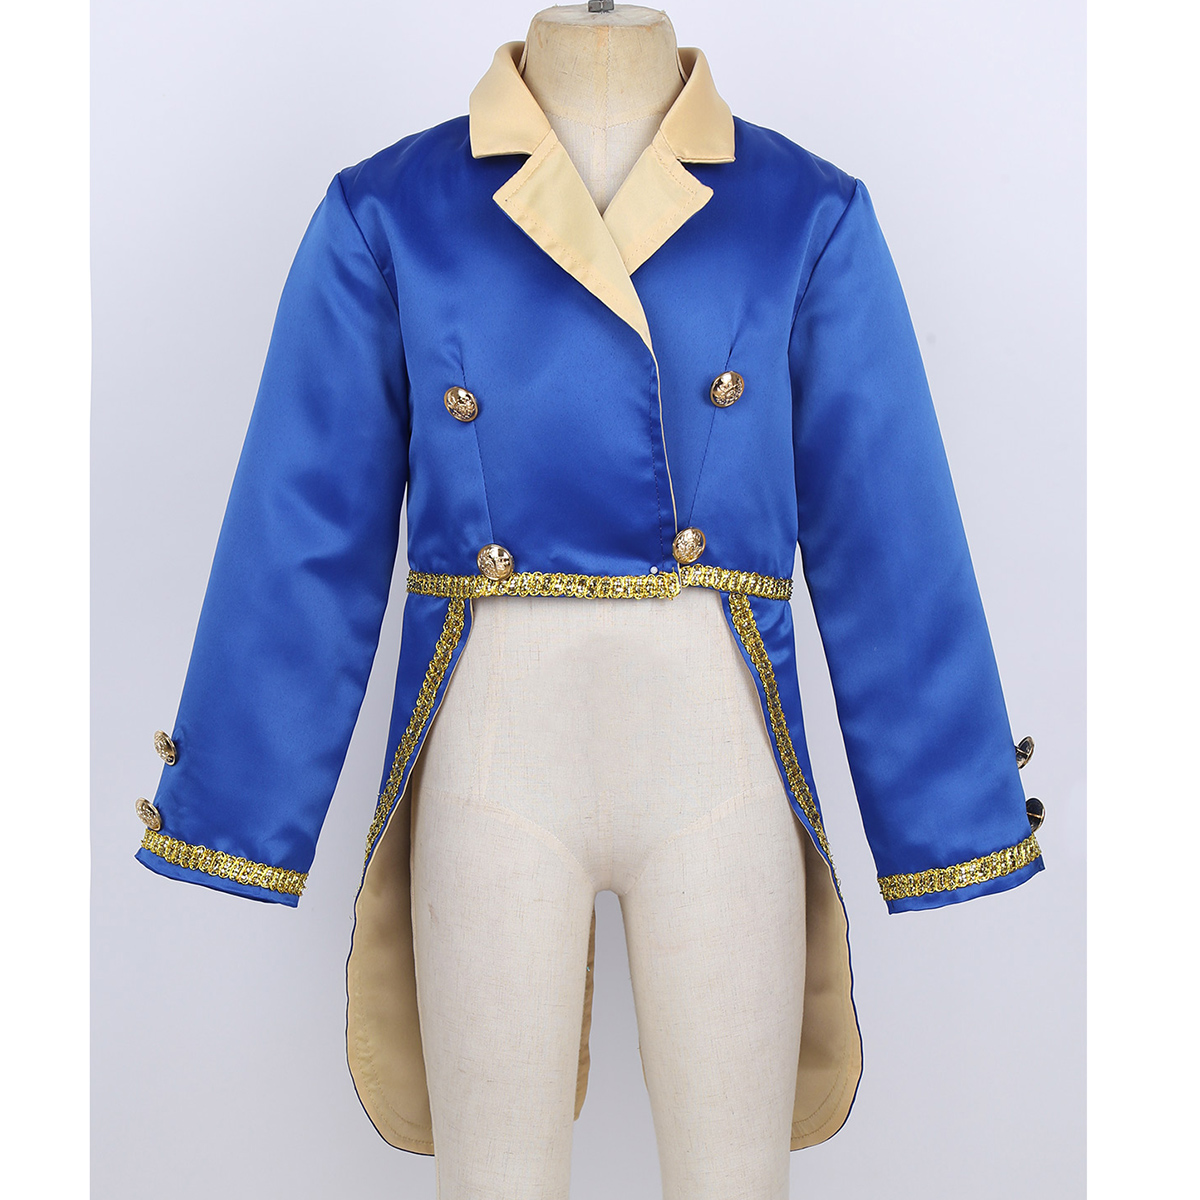 ChicTry Baby Boys Prince Costume Turn-Down Collar Tuxedo Jacket Kids Toddlers Halloween Cosplay Birthday Theme Party Tailcoat